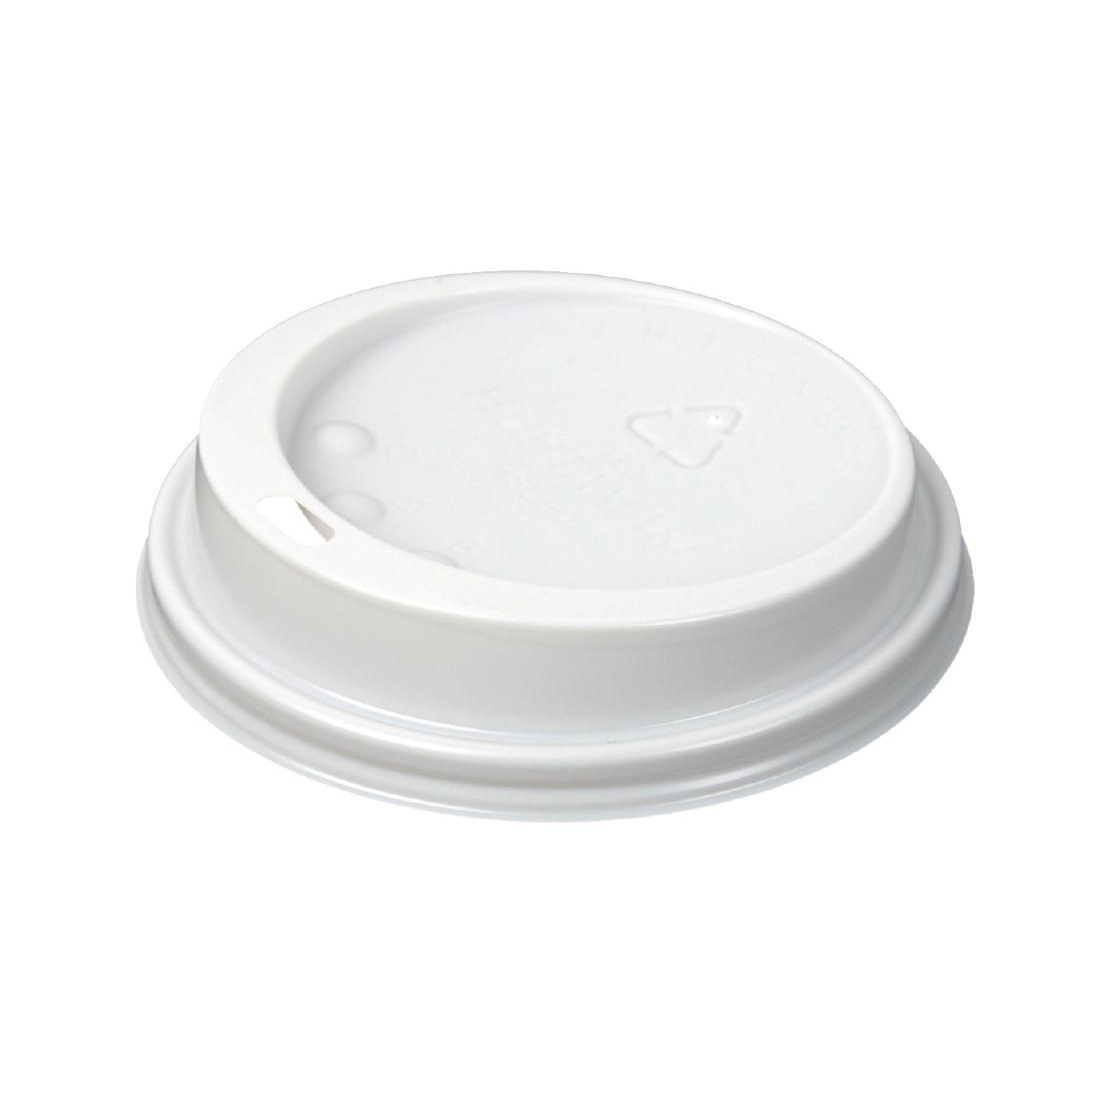 Huhtamaki Hot Cup Lid to fit 12 / 16oz White